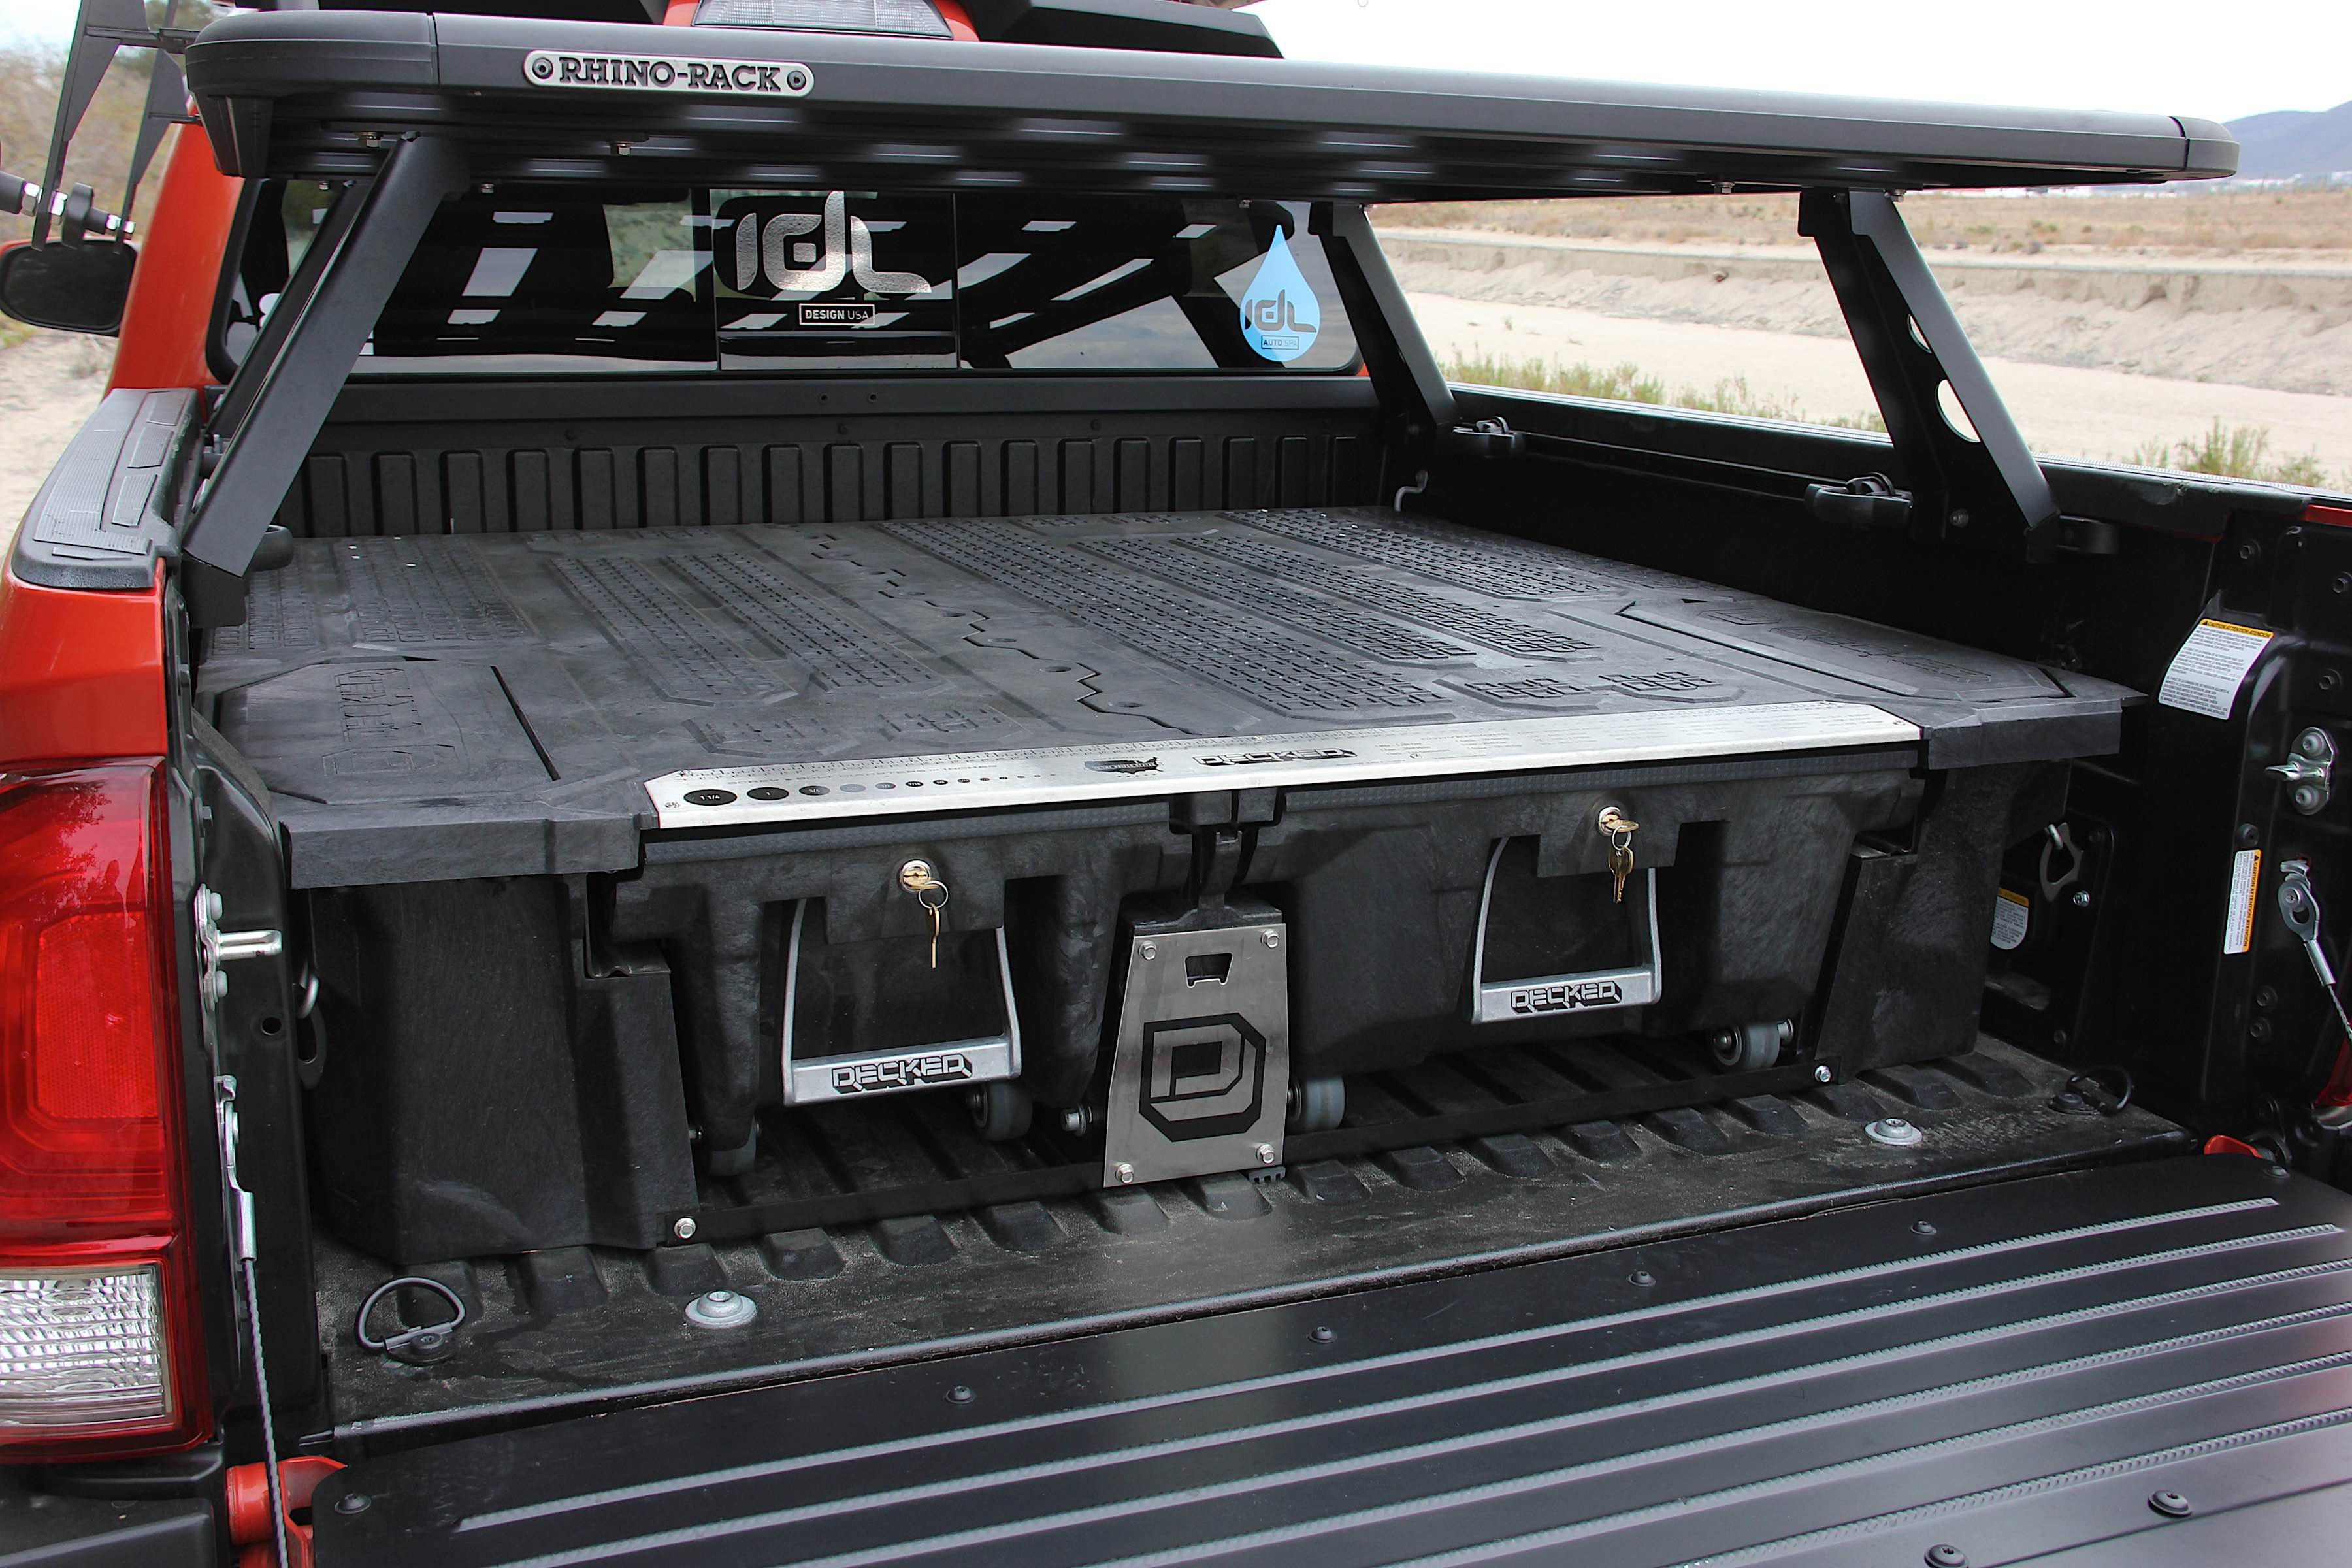 Decked Out Toyota Tacoma With Decked In Bed Storage System